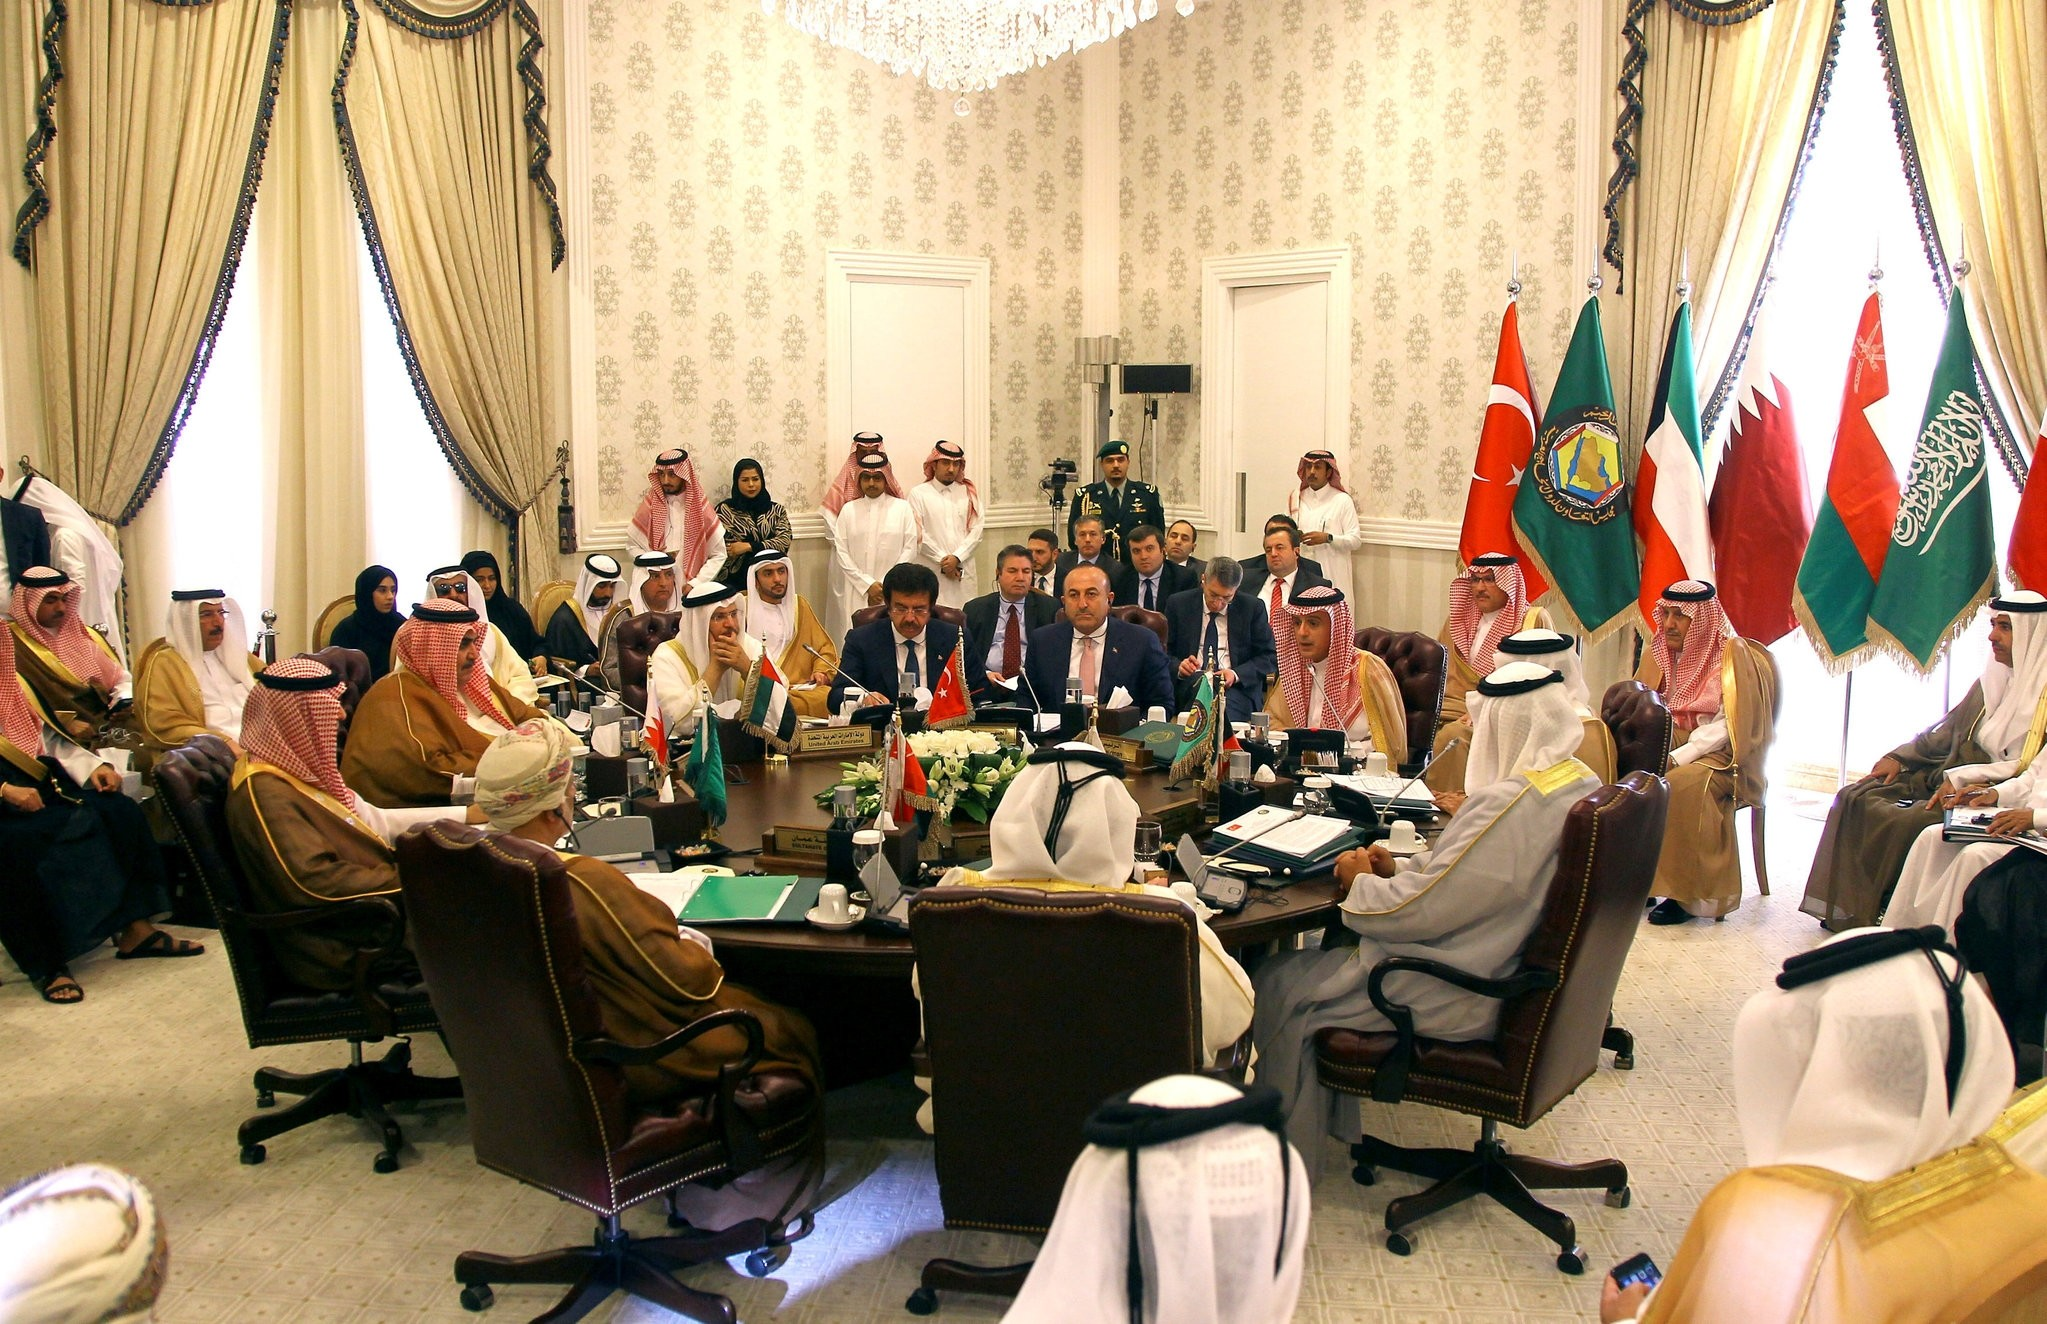 Mevlu00fct u00c7avuu015fou011flu attends a meeting with Foreign Ministers of Gulf Cooperation Council (GCC) in Riyadh, Saudi Arabia, October 13, 2016. (REUTERS Photo)